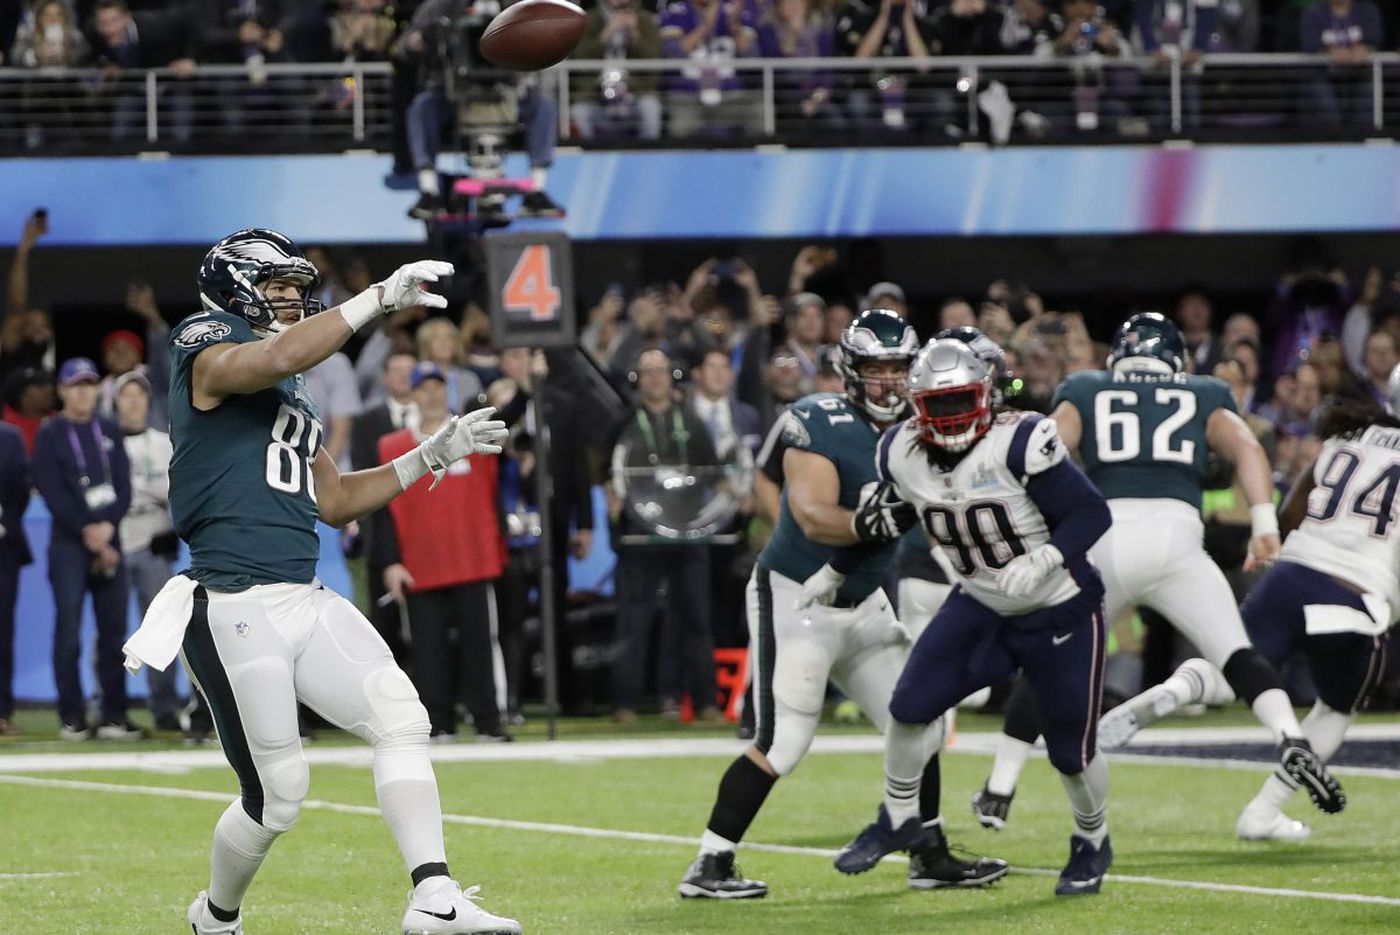 One special Super Bowl moment opens a new world for the Eagles' Trey Burton | Mike Sielski